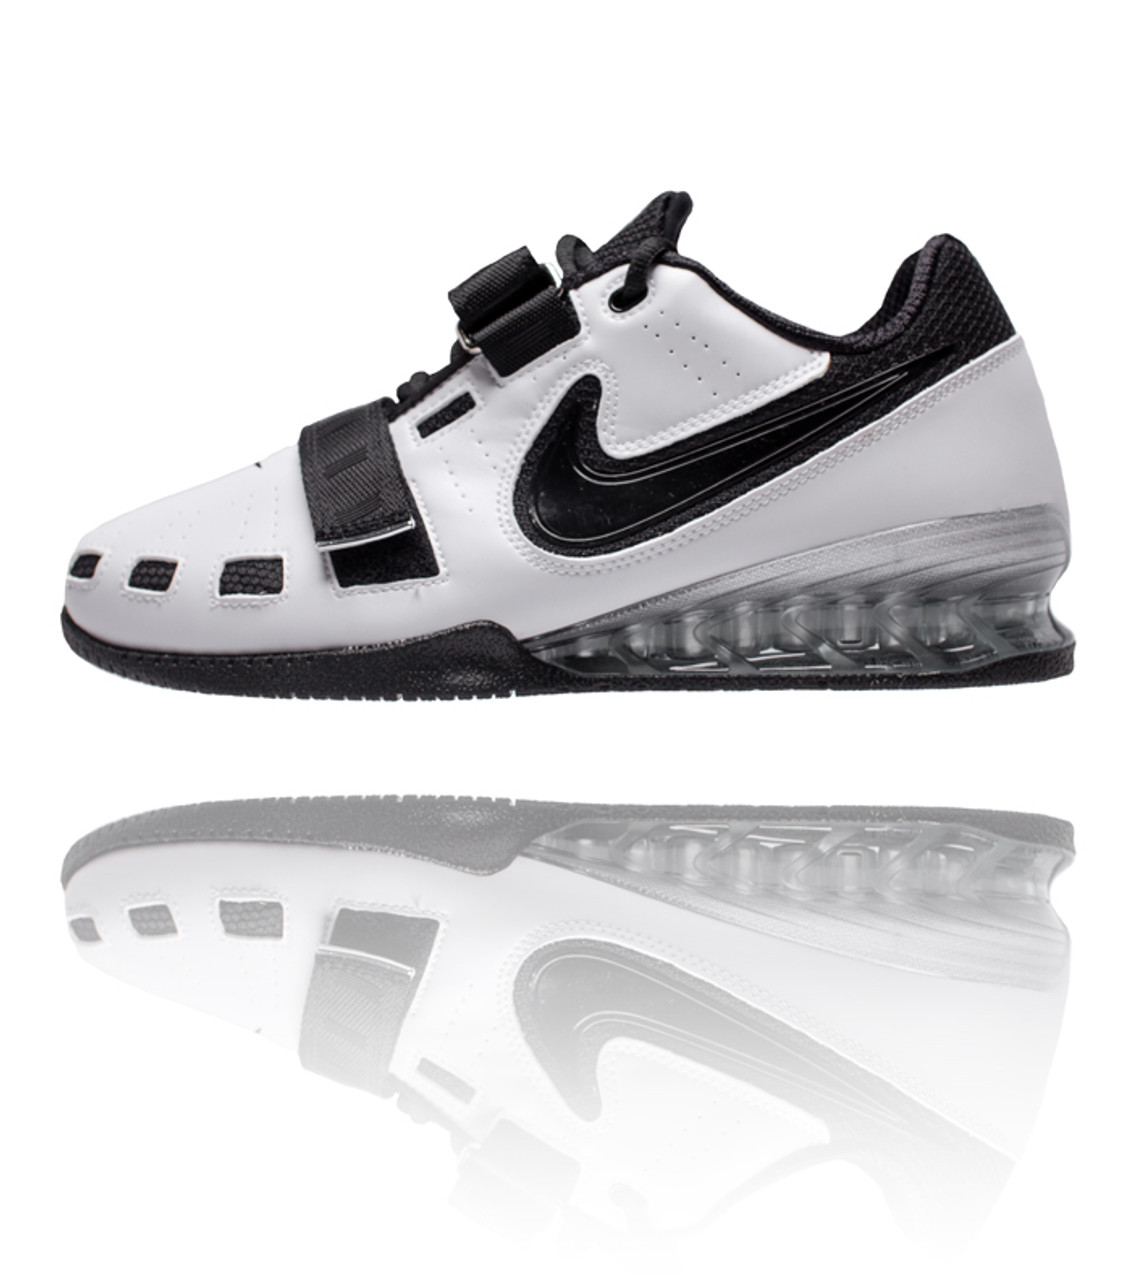 Nike Romaleos 2 Weightlifting Shoes White Black